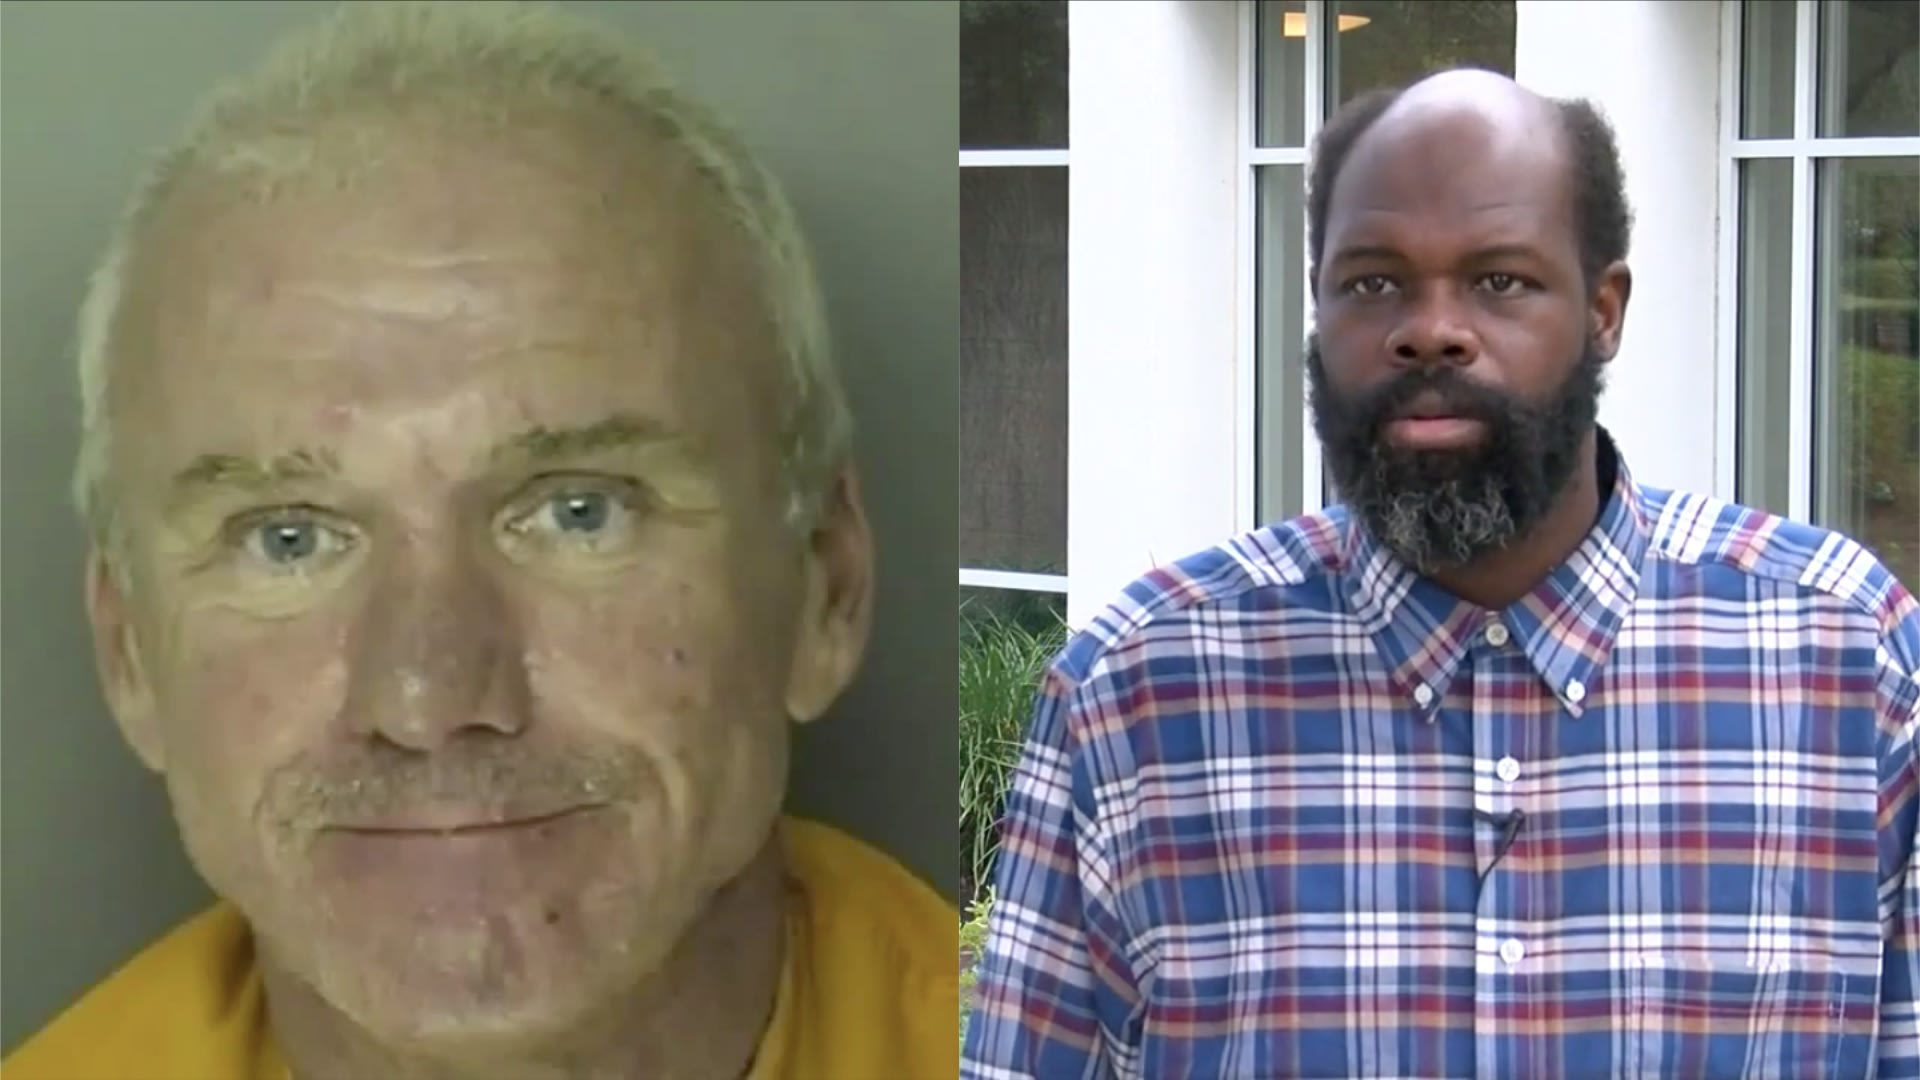 White Restaurant Manager Who Enslaved And Abused Mentally Disabled Black Man Sentenced To Prison